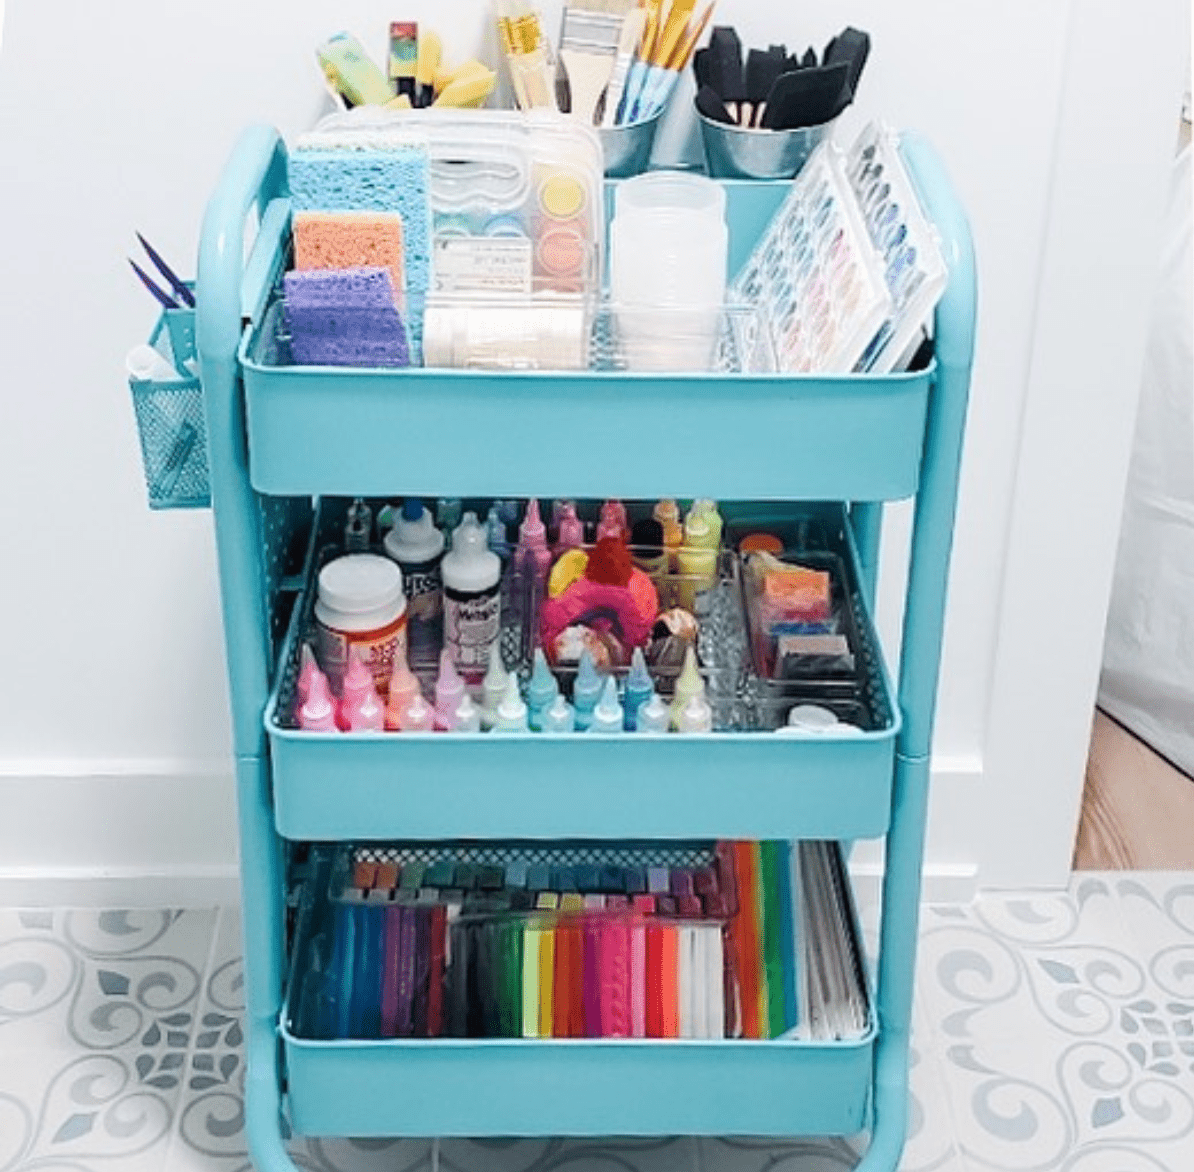 a rolling cart used for storing craft supplies